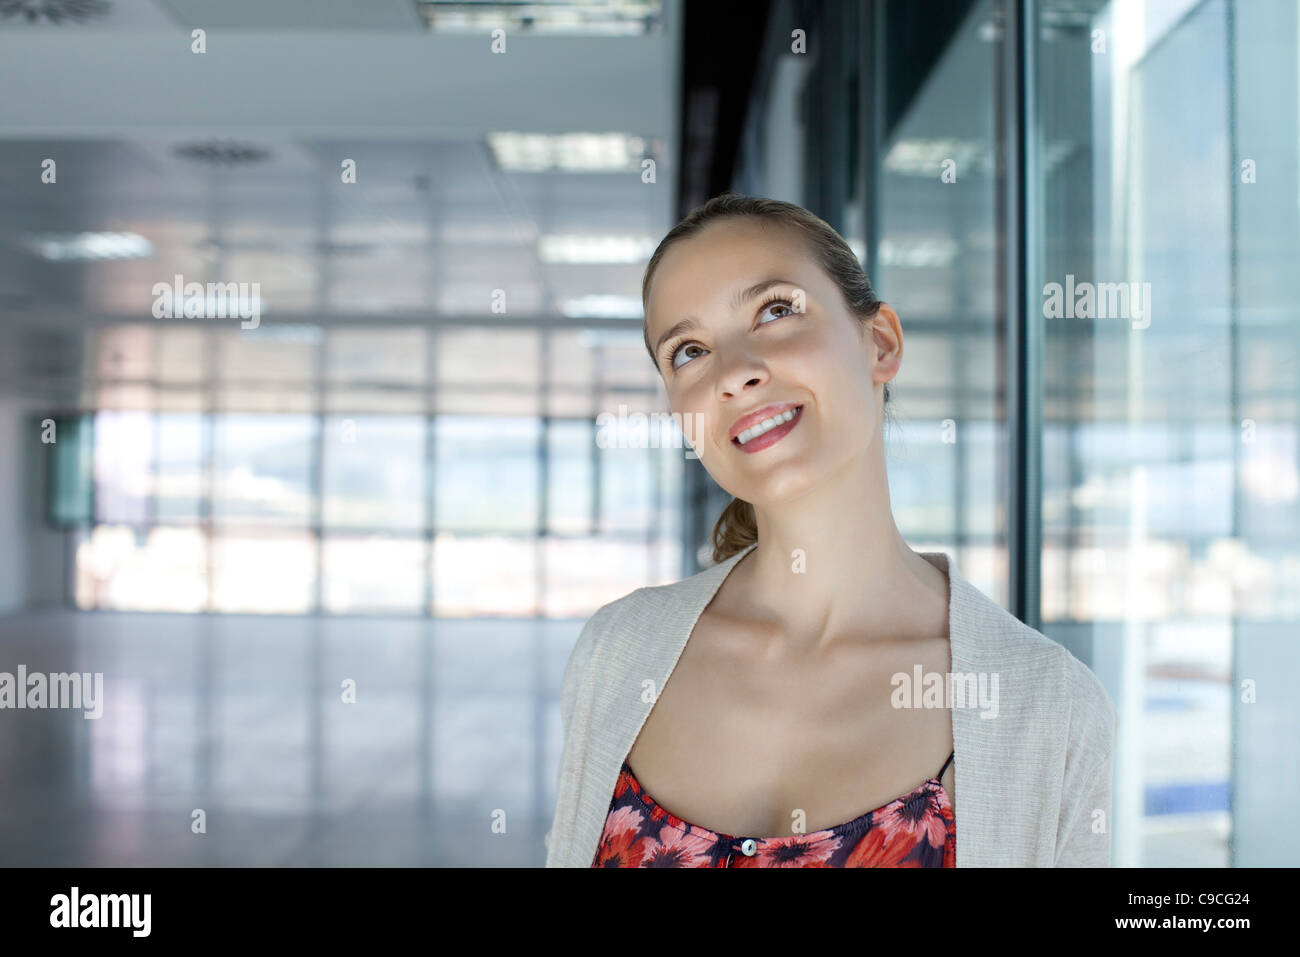 Woman looking up with head tilted - Stock Image